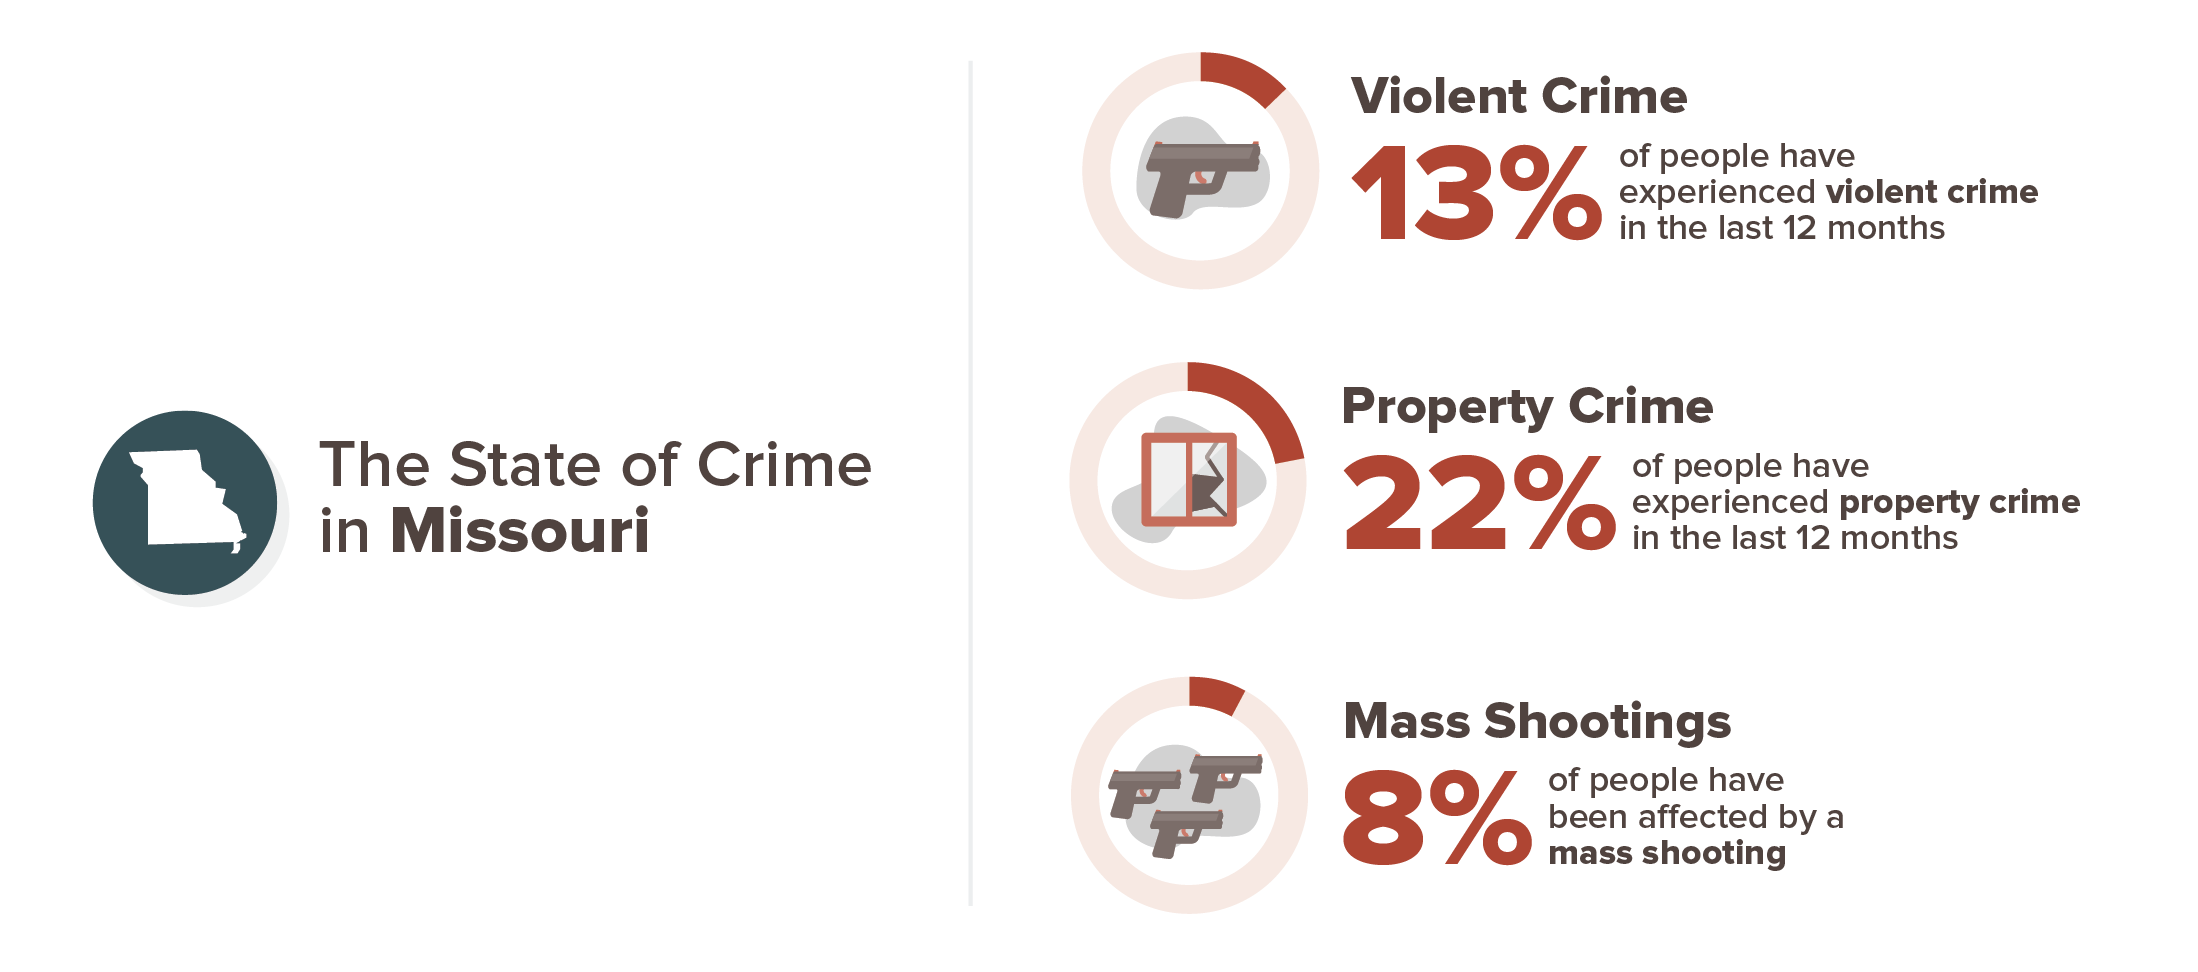 Missouri crime experience infographic; 13% violent crime, 22% property crime, 8% mass shooting